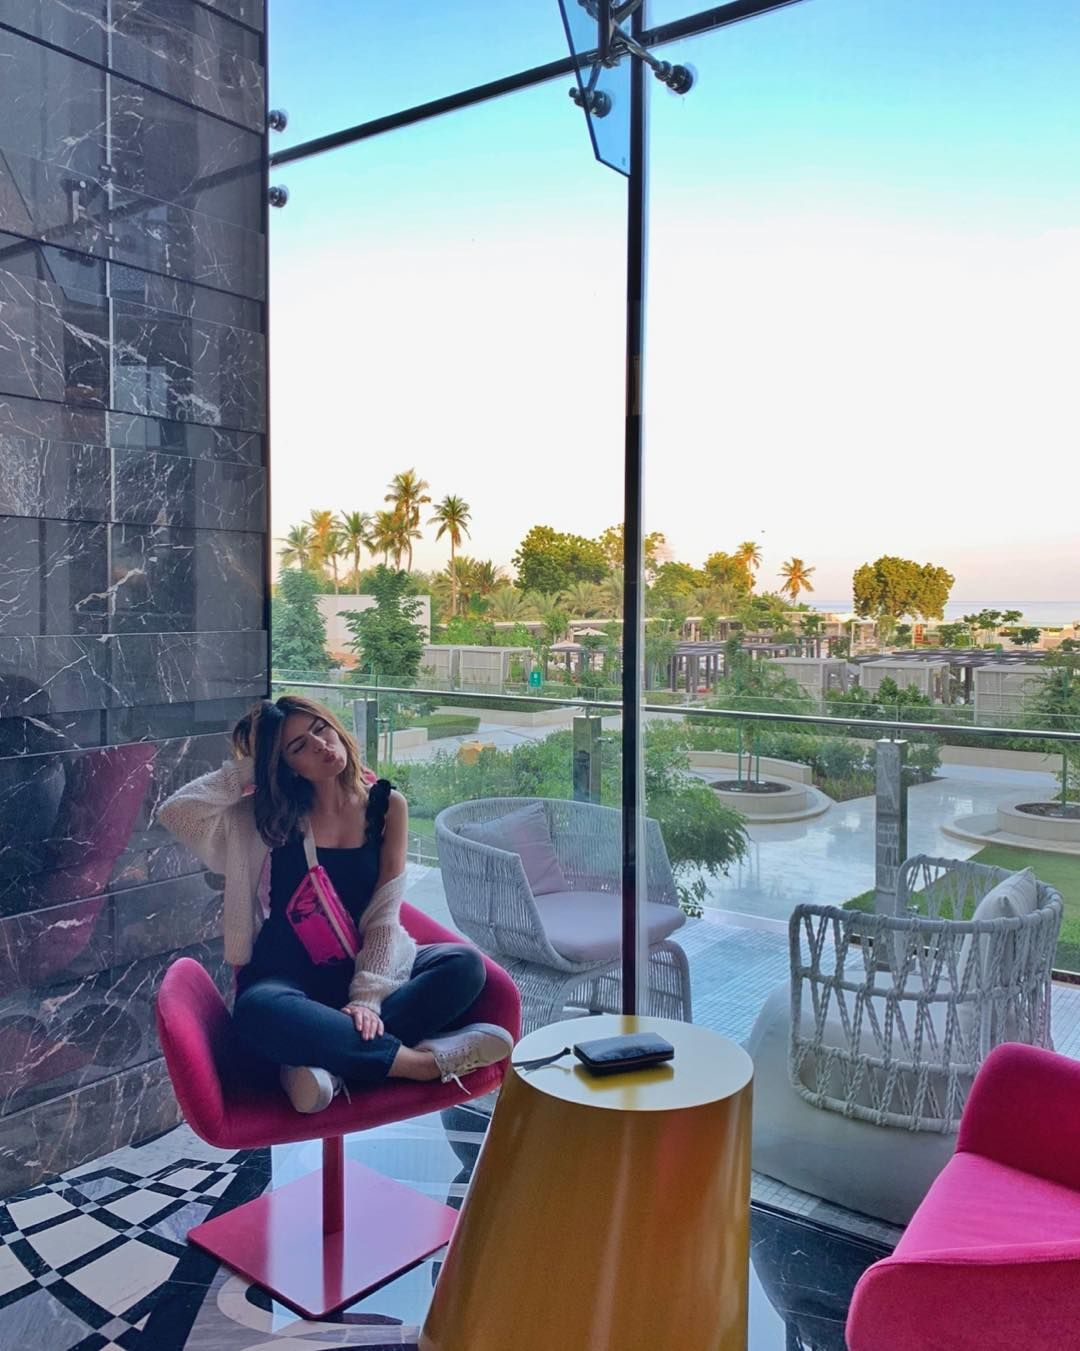 Safa Srour صفا سرور On Instagram Throwback To Muscat And Wmuscat We Are So Happy To Be Revisiting This Amazing City Patio Umbrella Patio Outdoor Decor